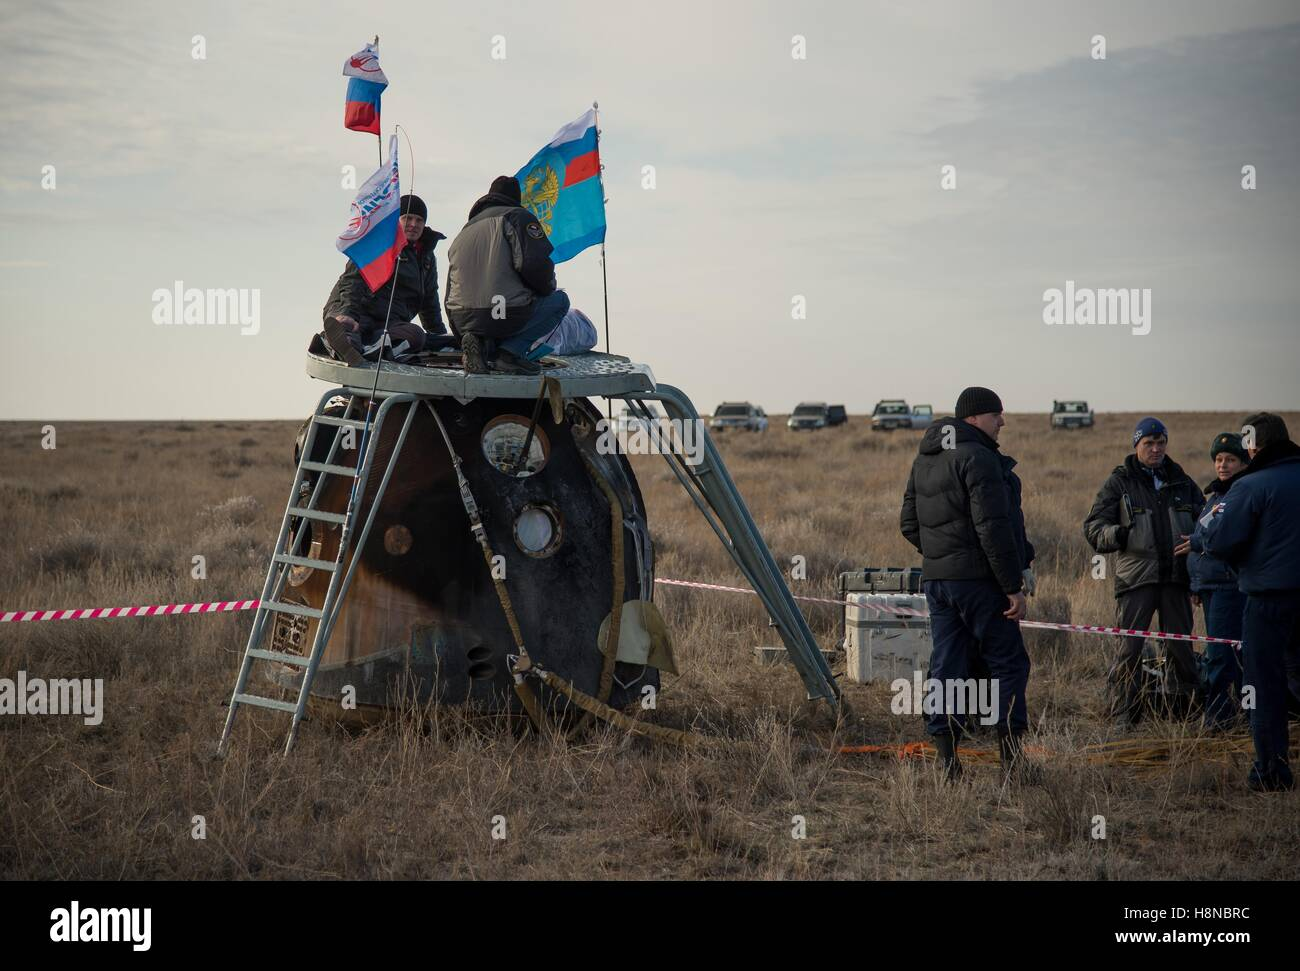 Russian support personnel work around the Soyuz MS-01 spacecraft after landing in a remote area October 30, 2016 - Stock Image